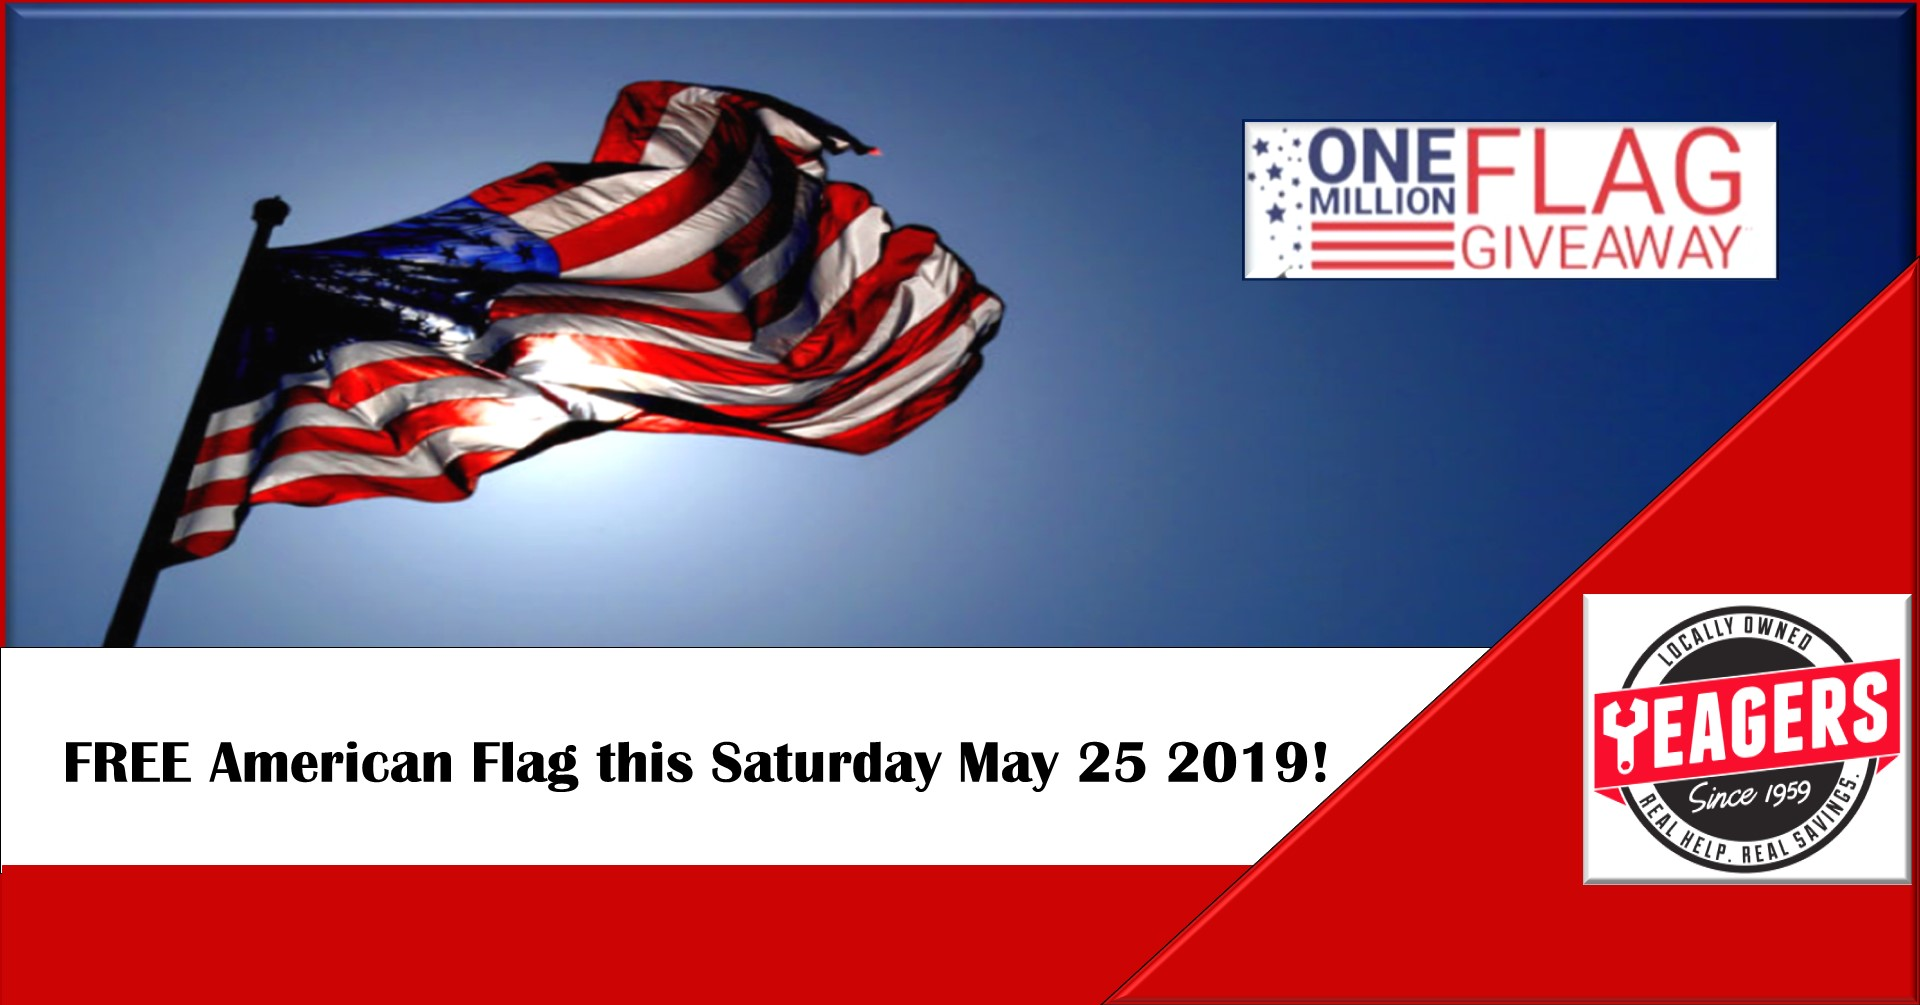 One Million Flag Giveaway